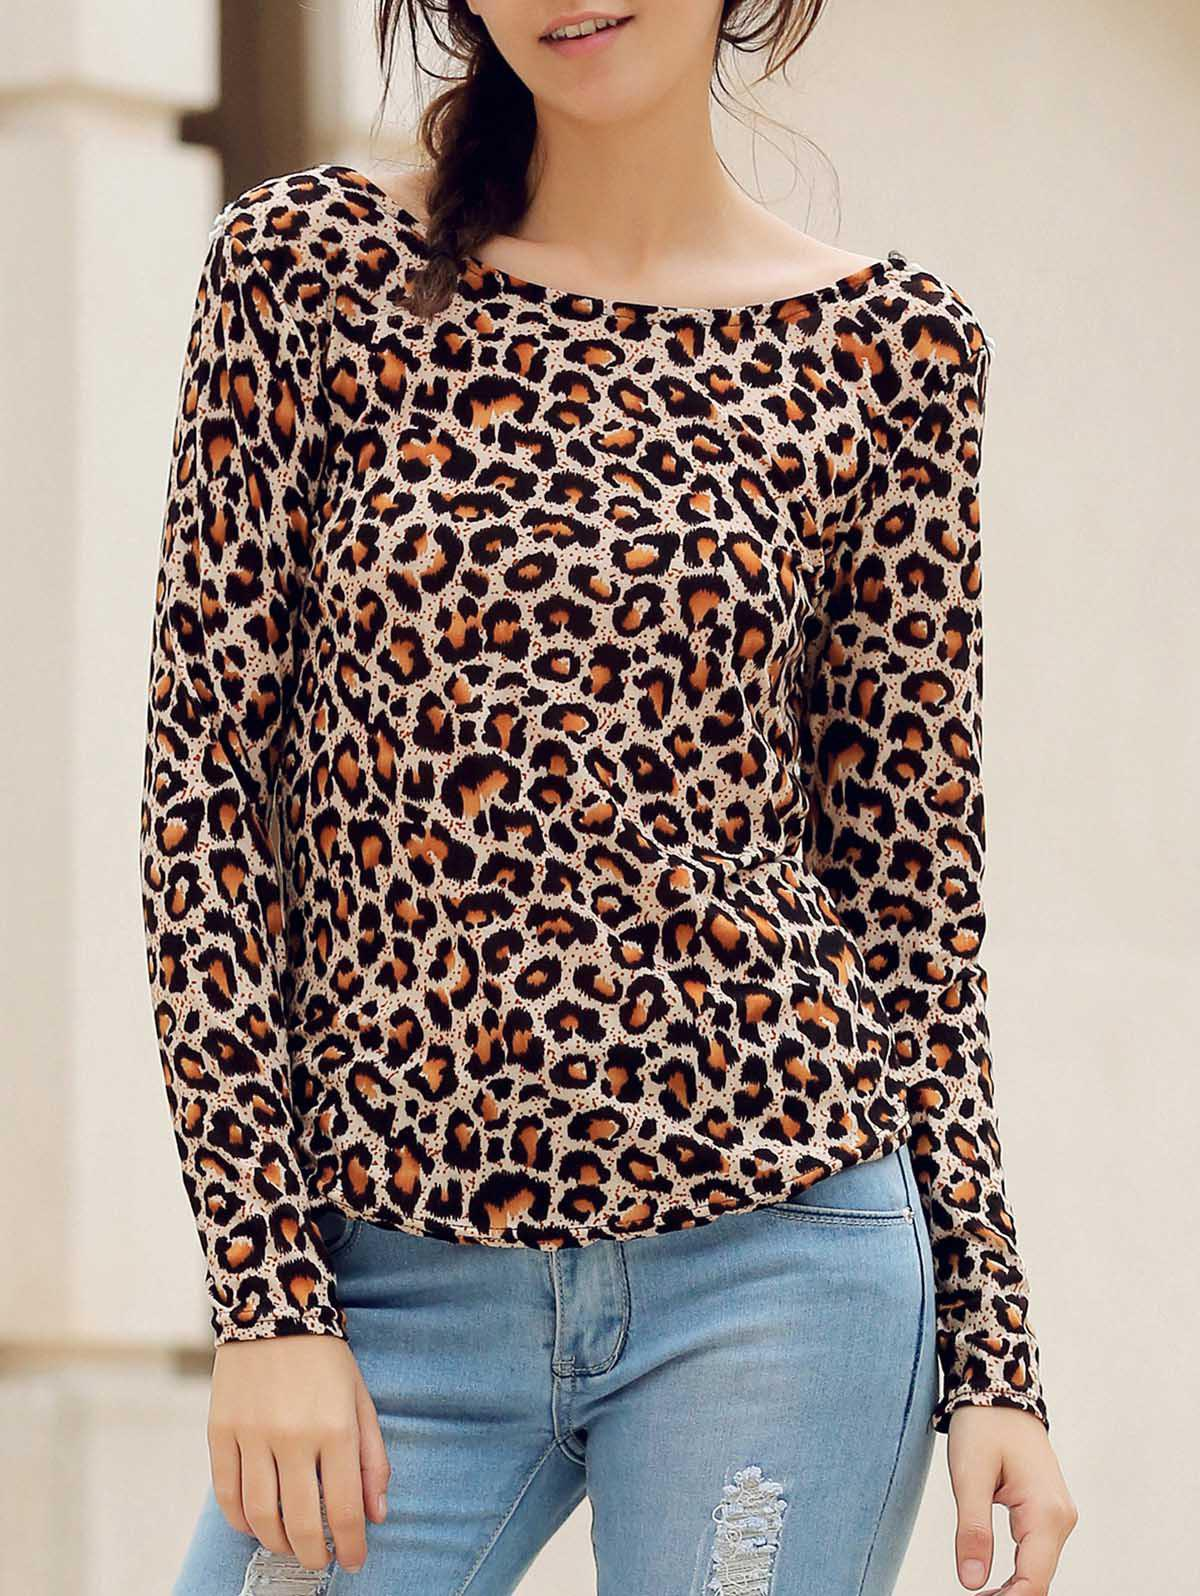 Stylish Round Neck Long Sleeve Backless Leopard Print Women's T-Shirt - LEOPARD S